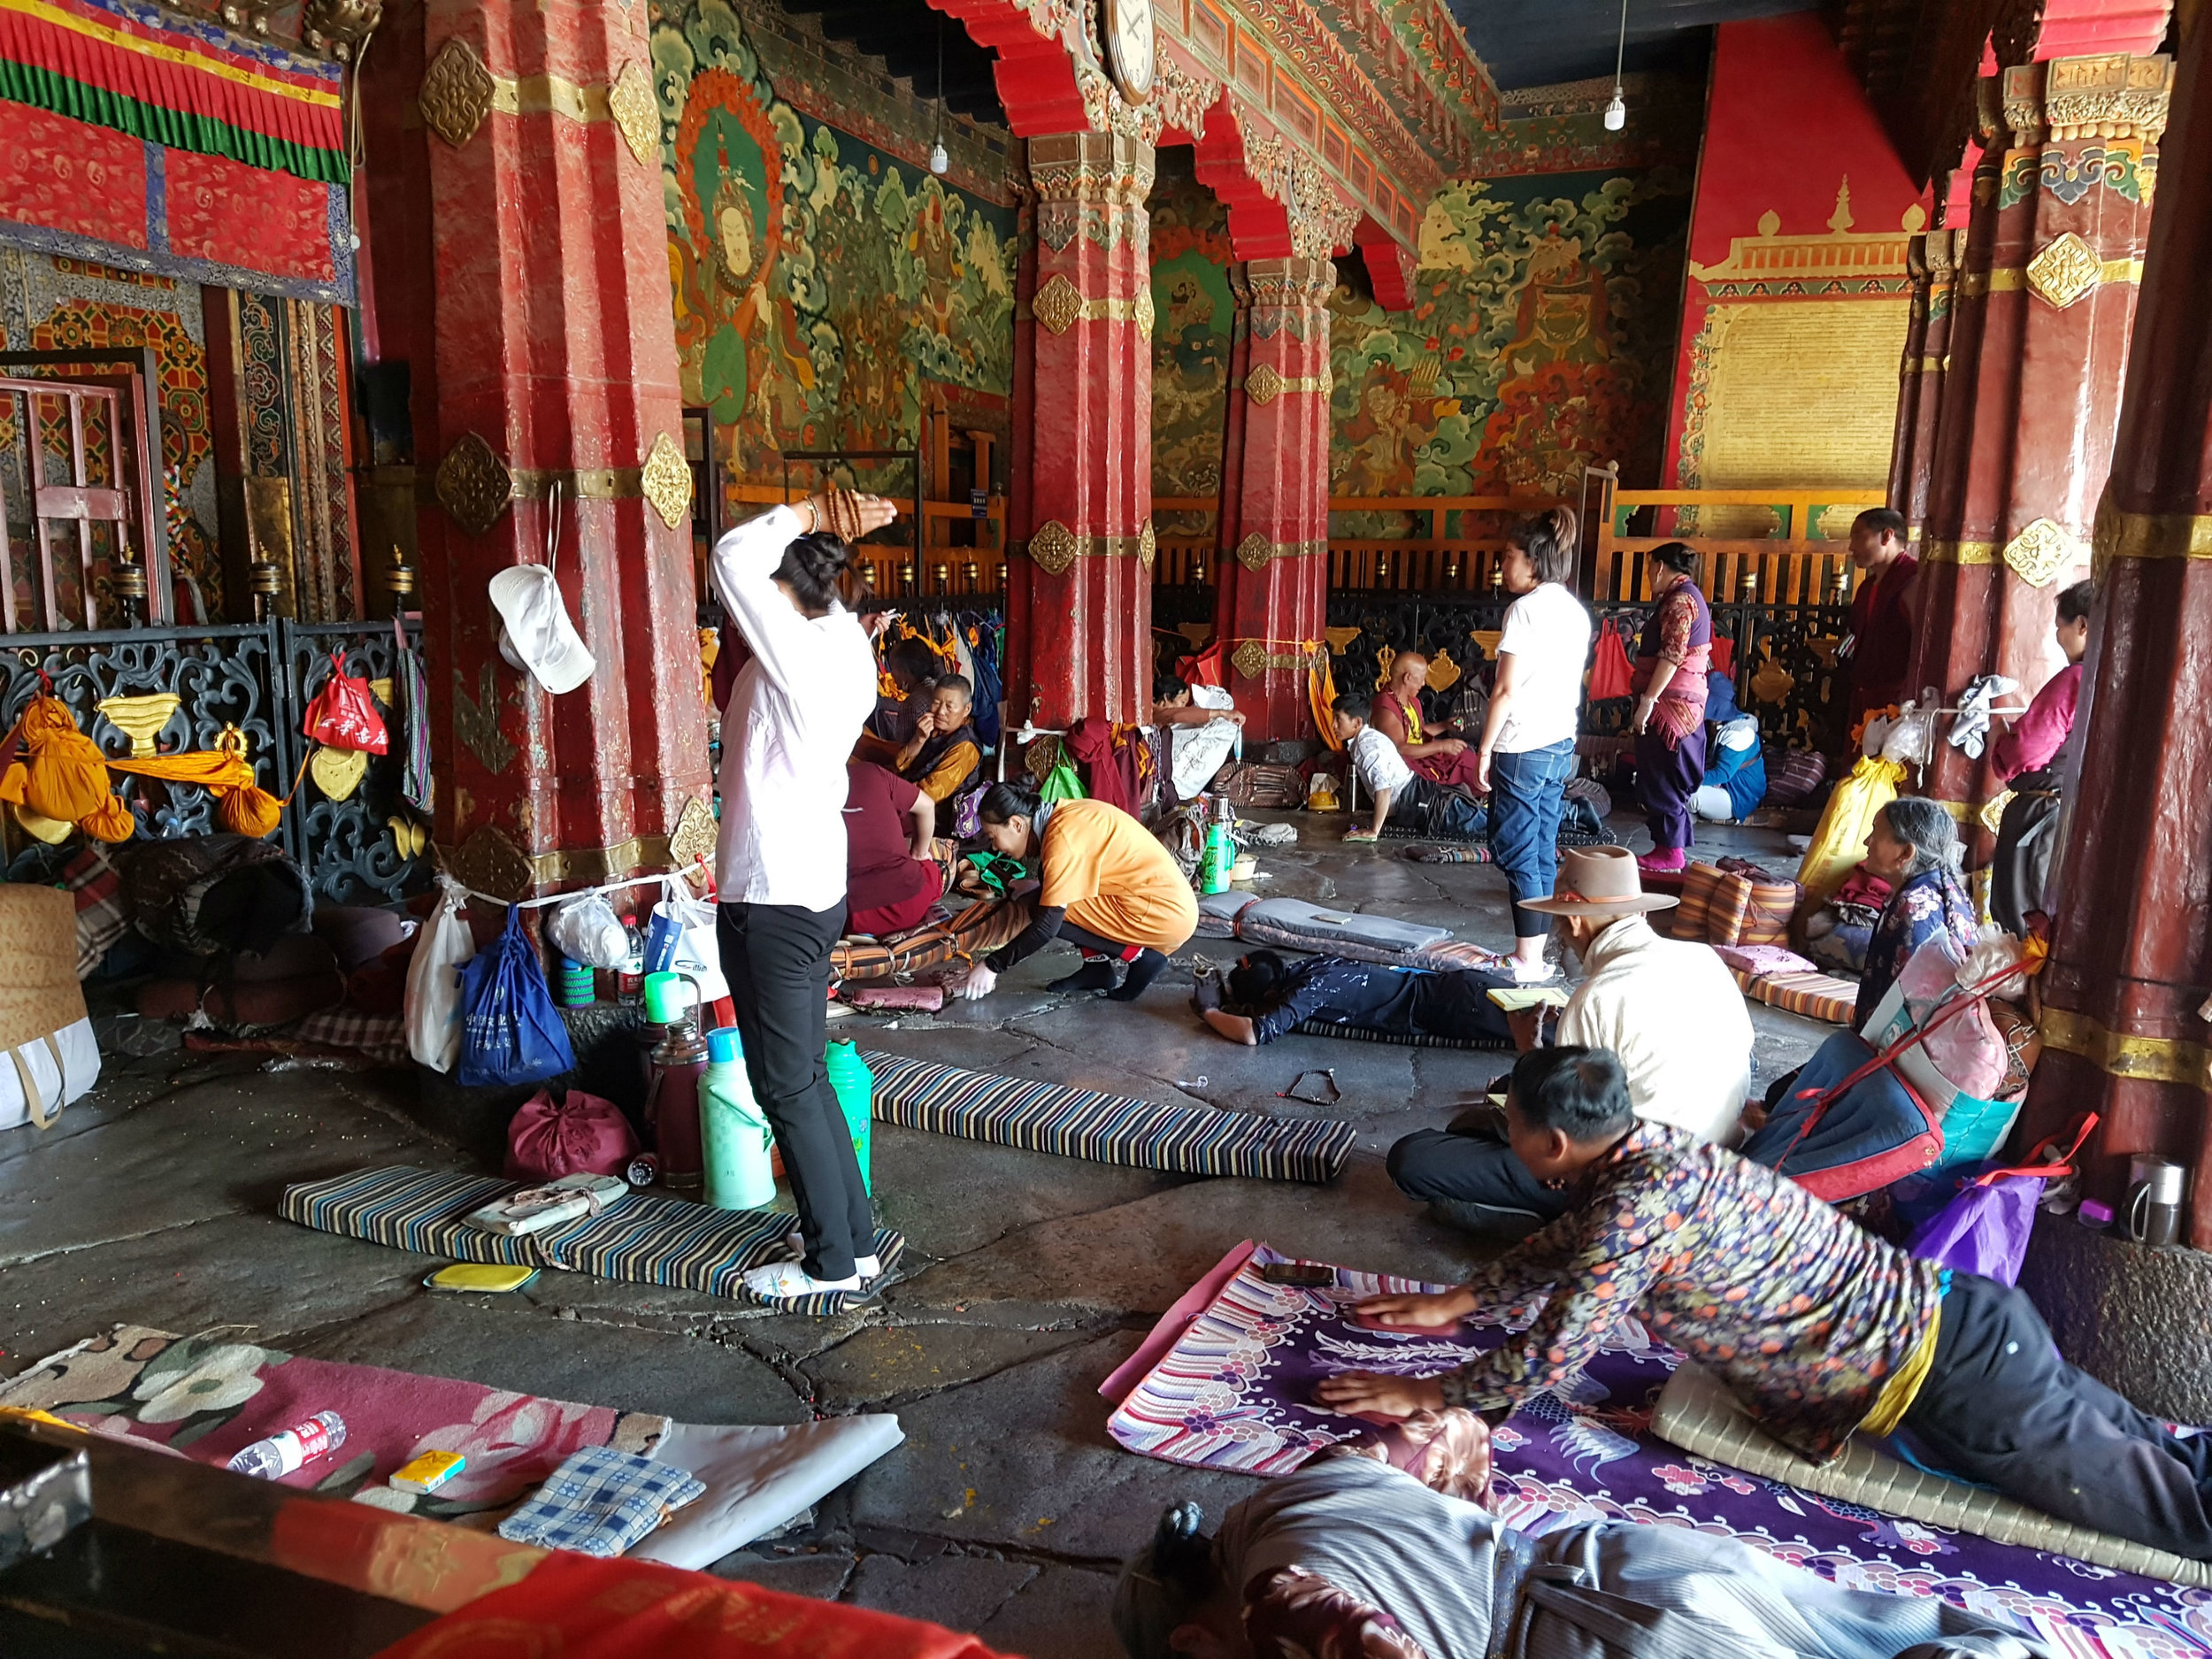 Devotees prostrating themselves in front of Jokhang Temple